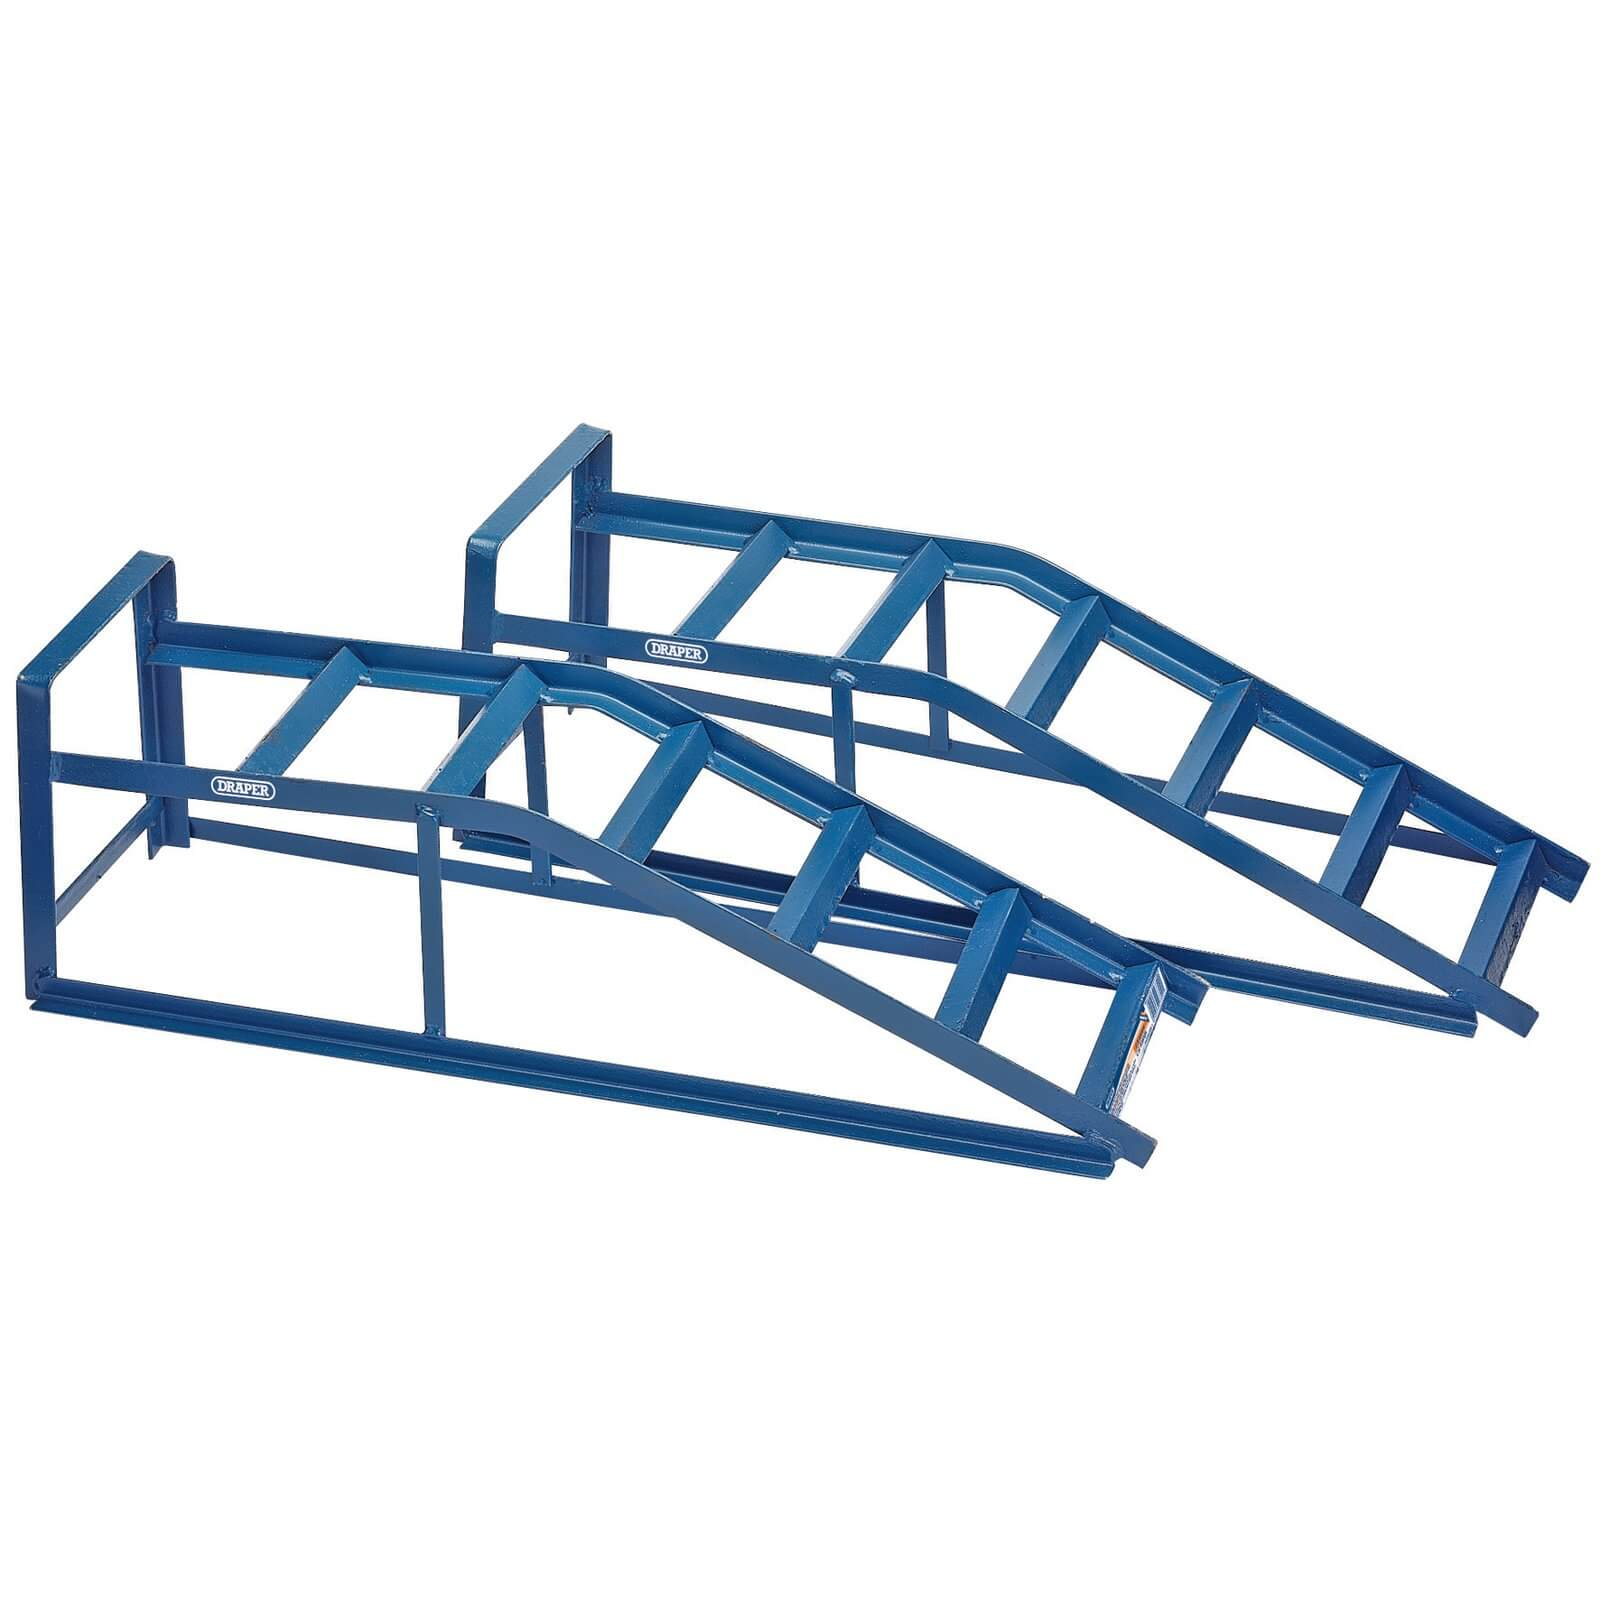 Image of DraperCar Ramp Pair Total 2.5 Tonne Capacity